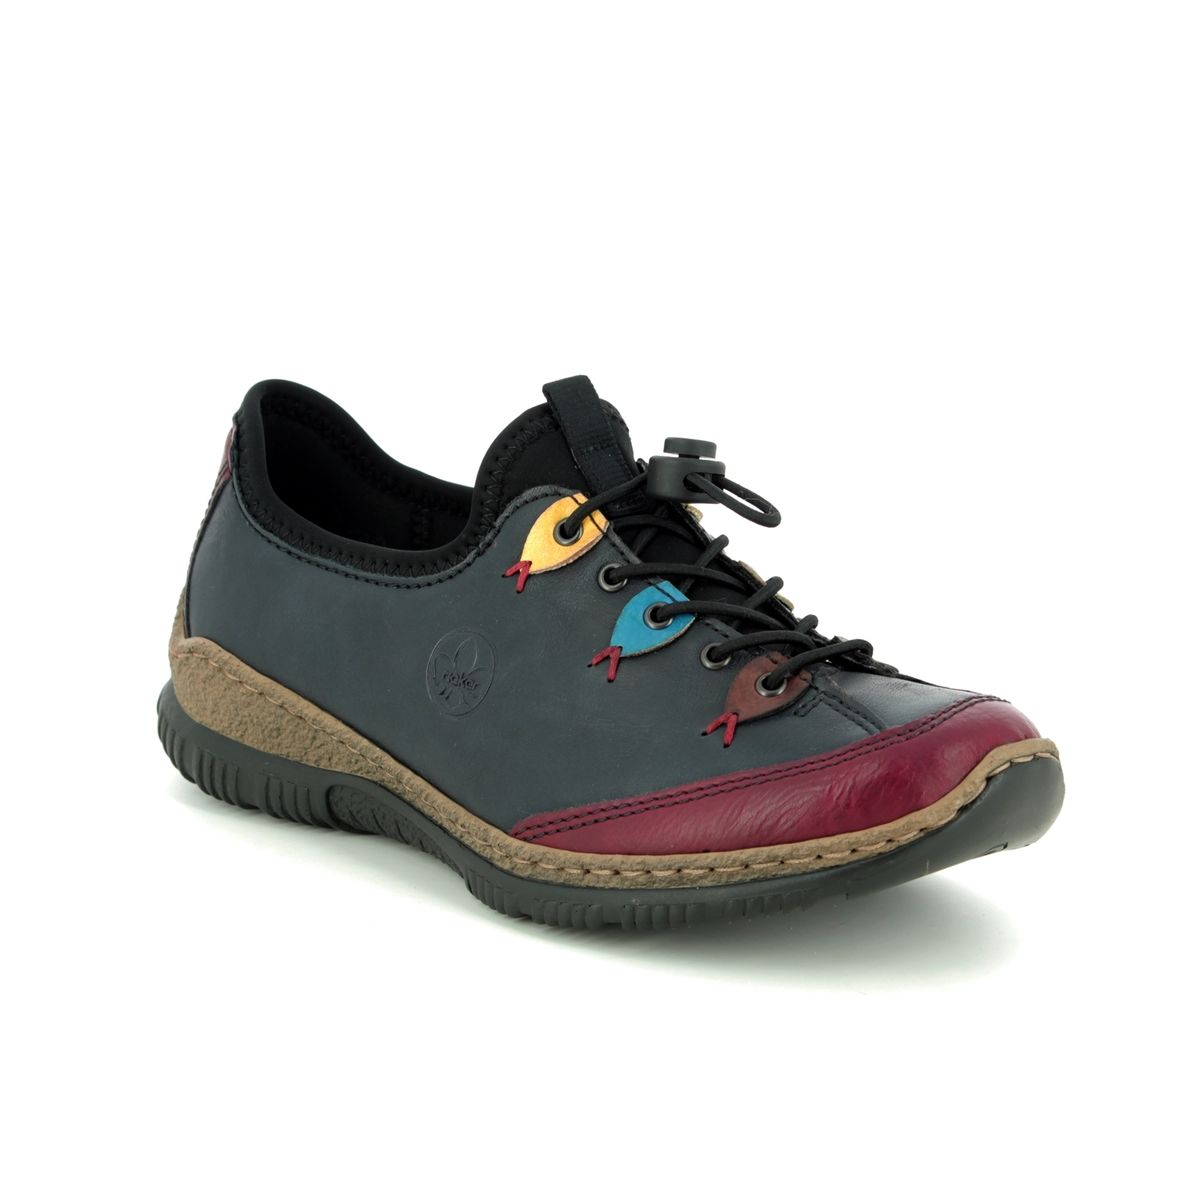 uk availability 68588 acd23 N3271-35 Memclown at Begg Shoes & Bags